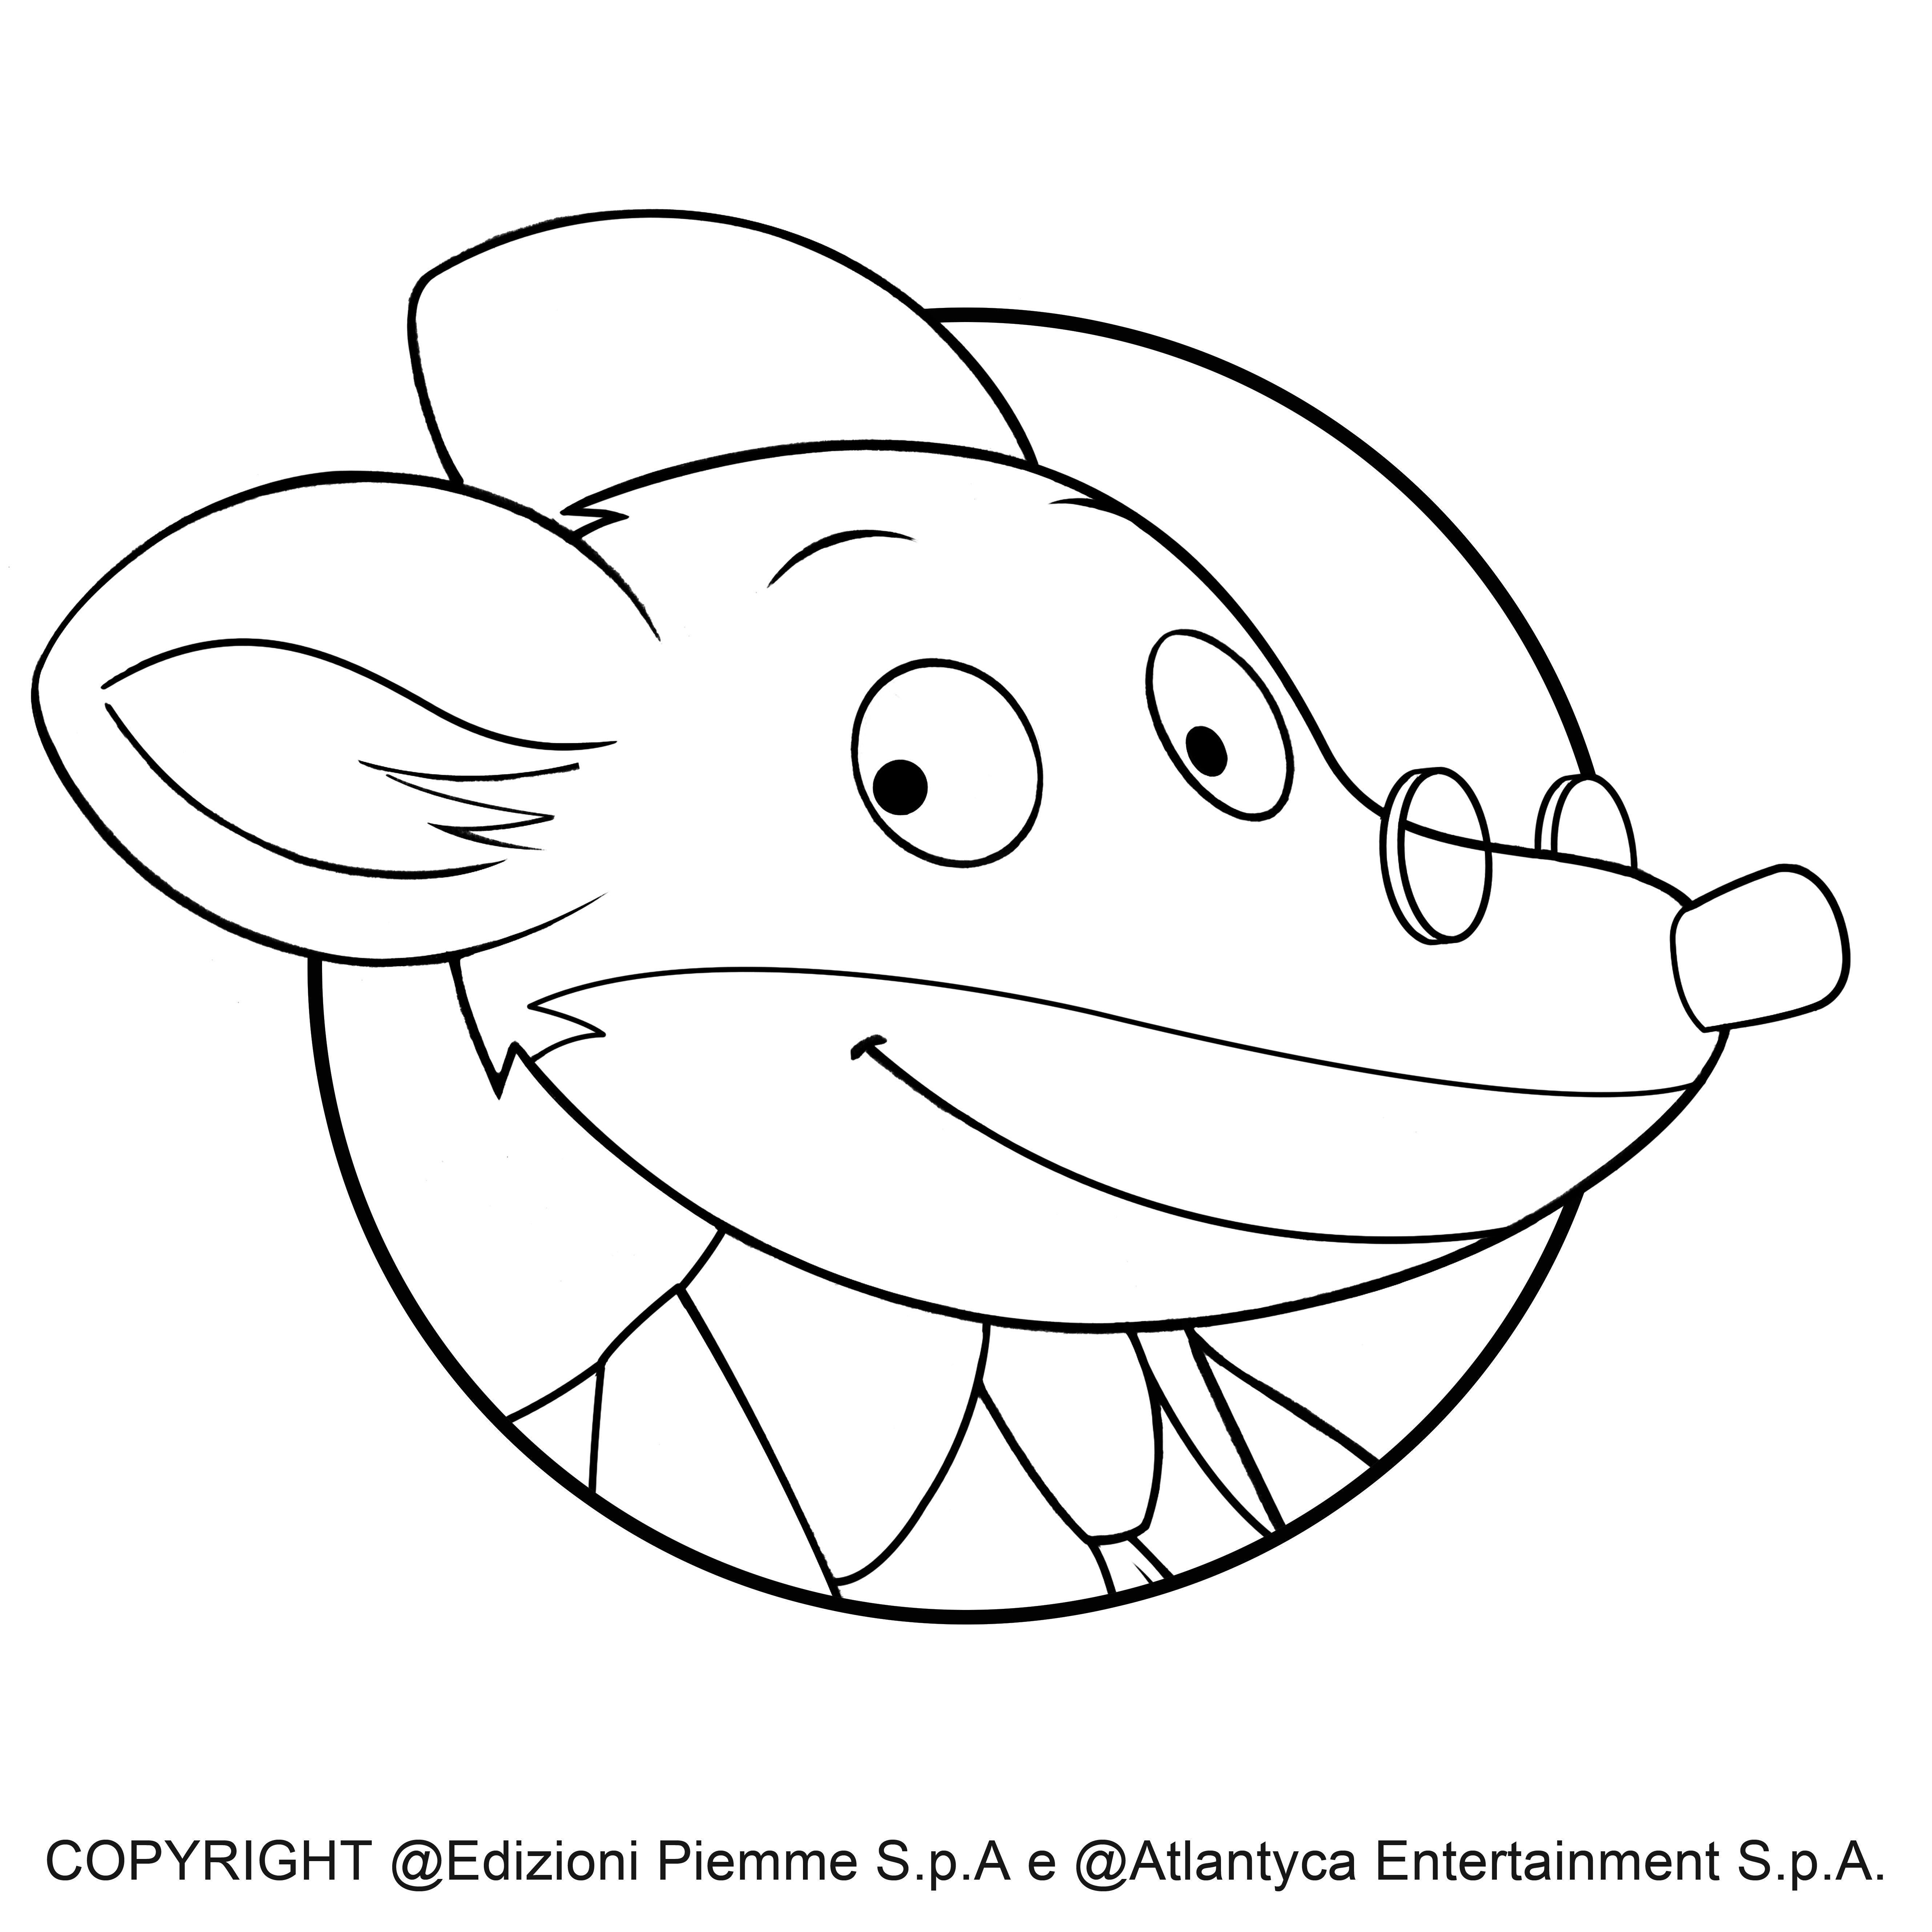 Pin by valerie kline on gs pinterest geronimo stilton for Geronimo stilton coloring pages free